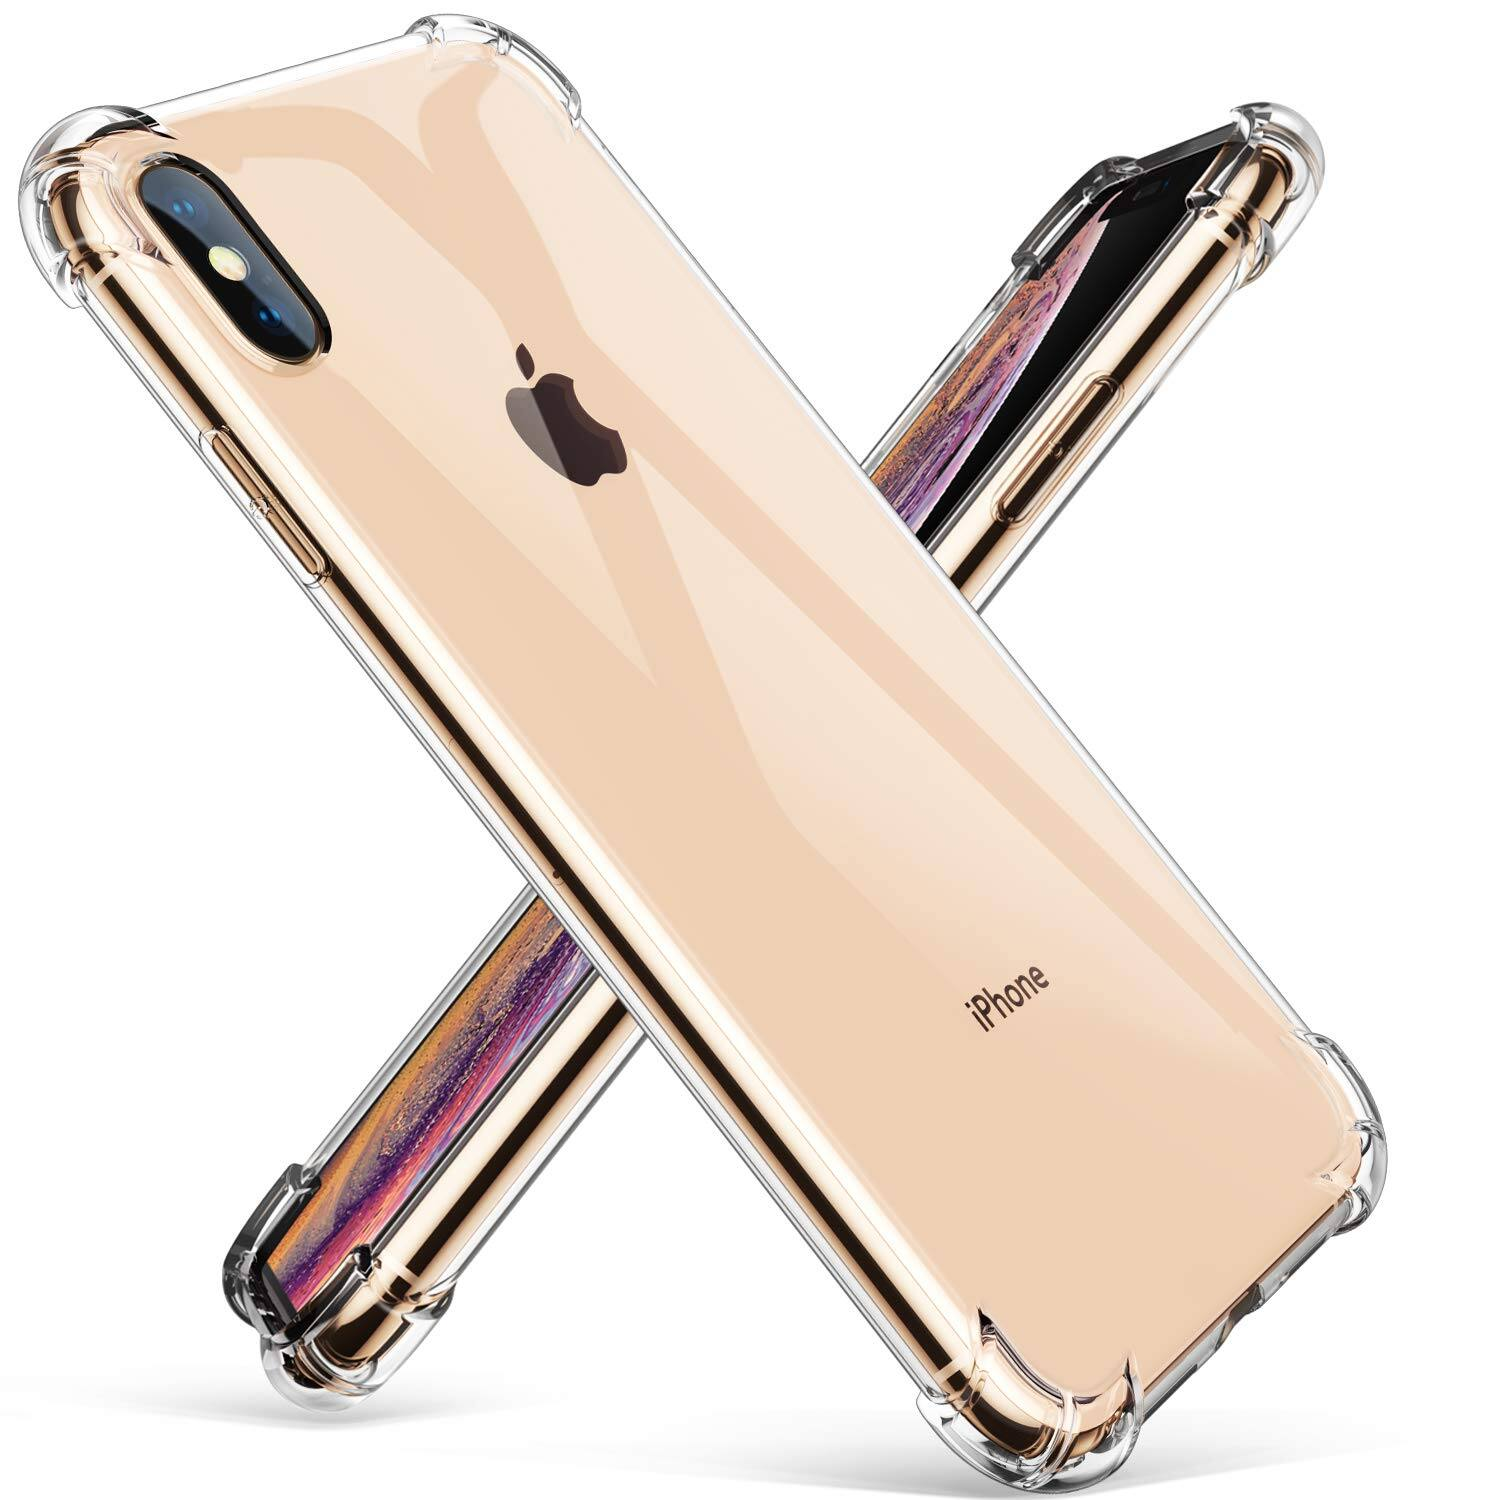 GVIEWIN Crystal Clear iPhone Xs Max Case, Soft TPU Cover with Shock Absorption Corners  for $3.96